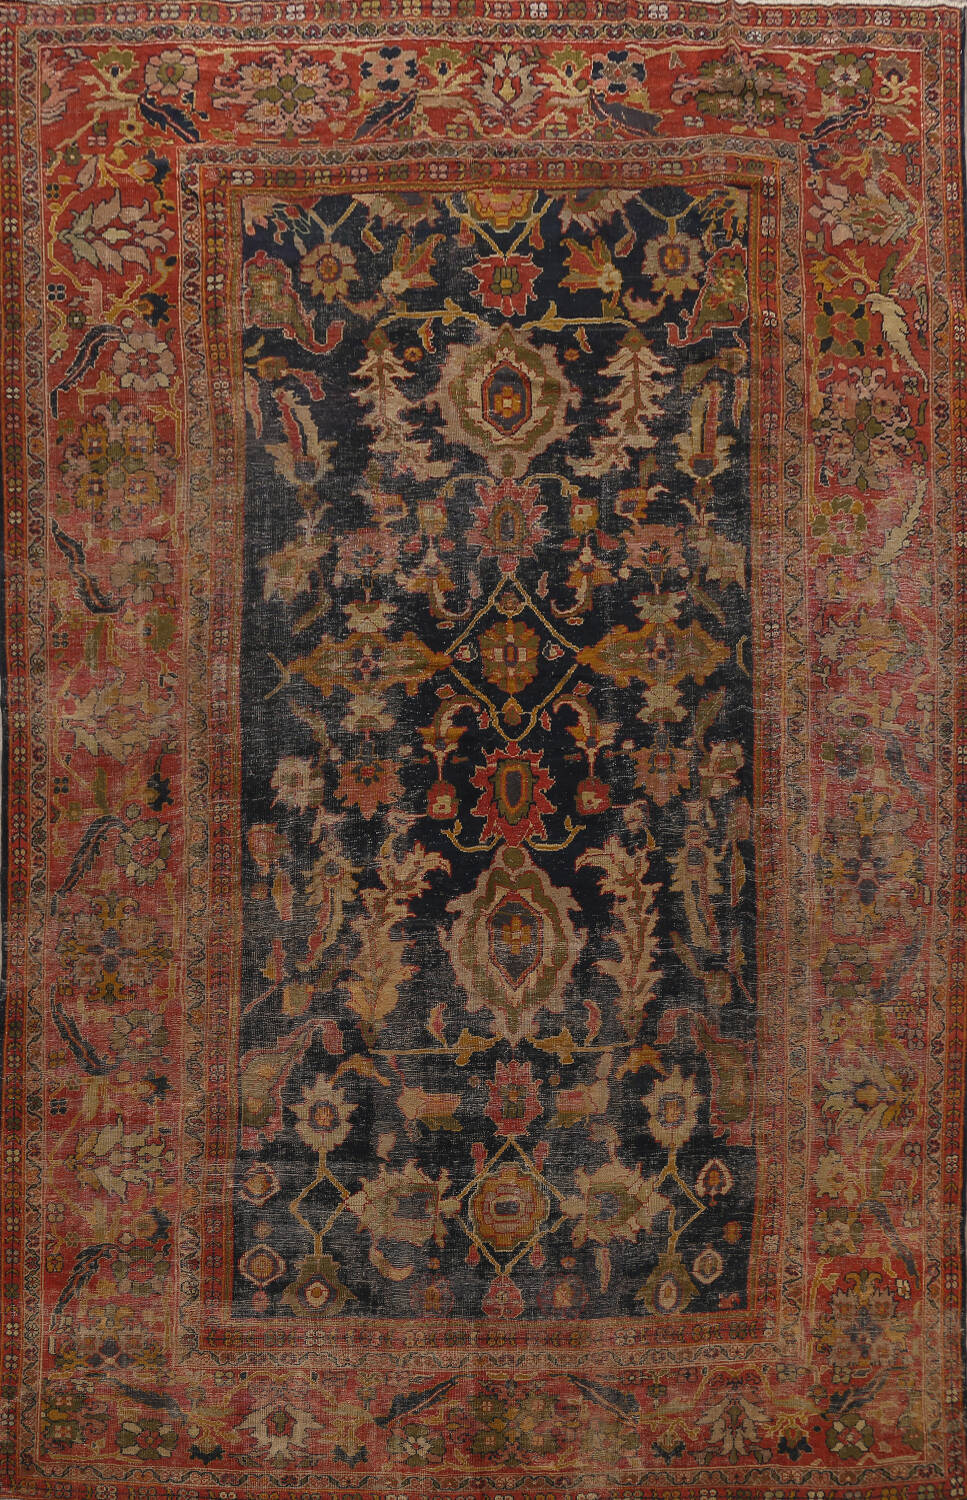 Antique Vegetable Dye Sultanabad Persian Area Rug 11x14 Large image 1